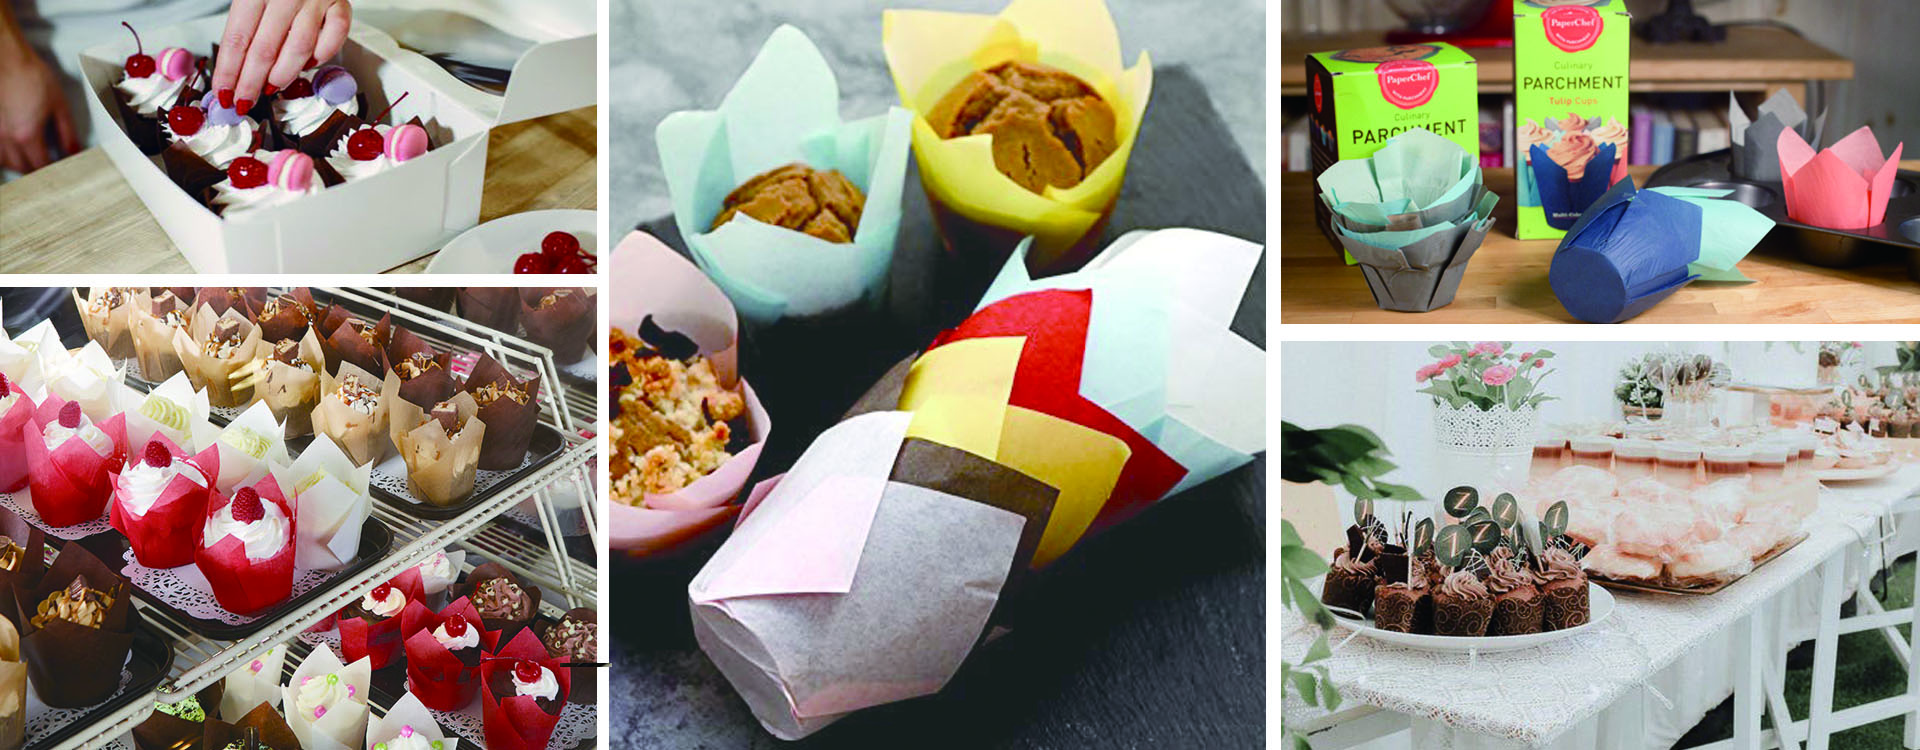 grease proof paper tulip muffin cups